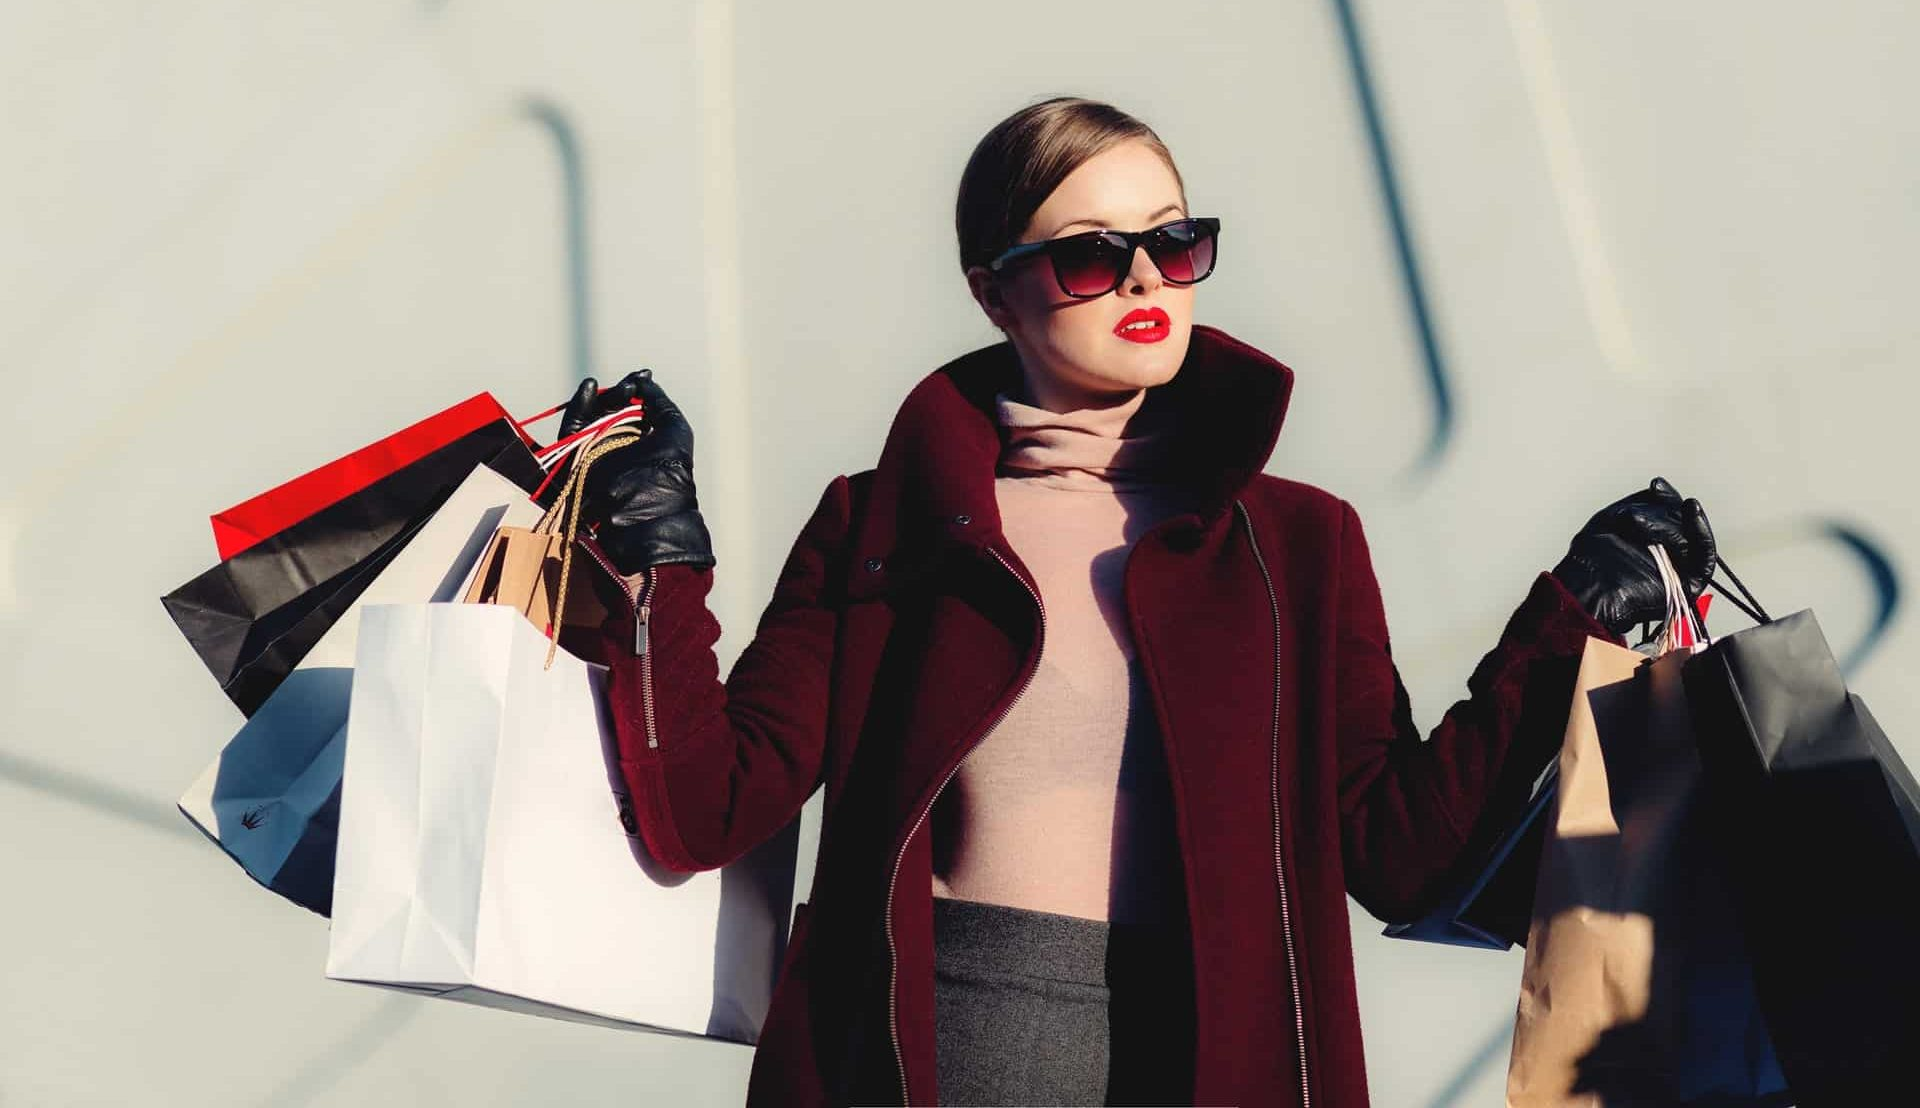 A girl shopping in Downtown Vancouver